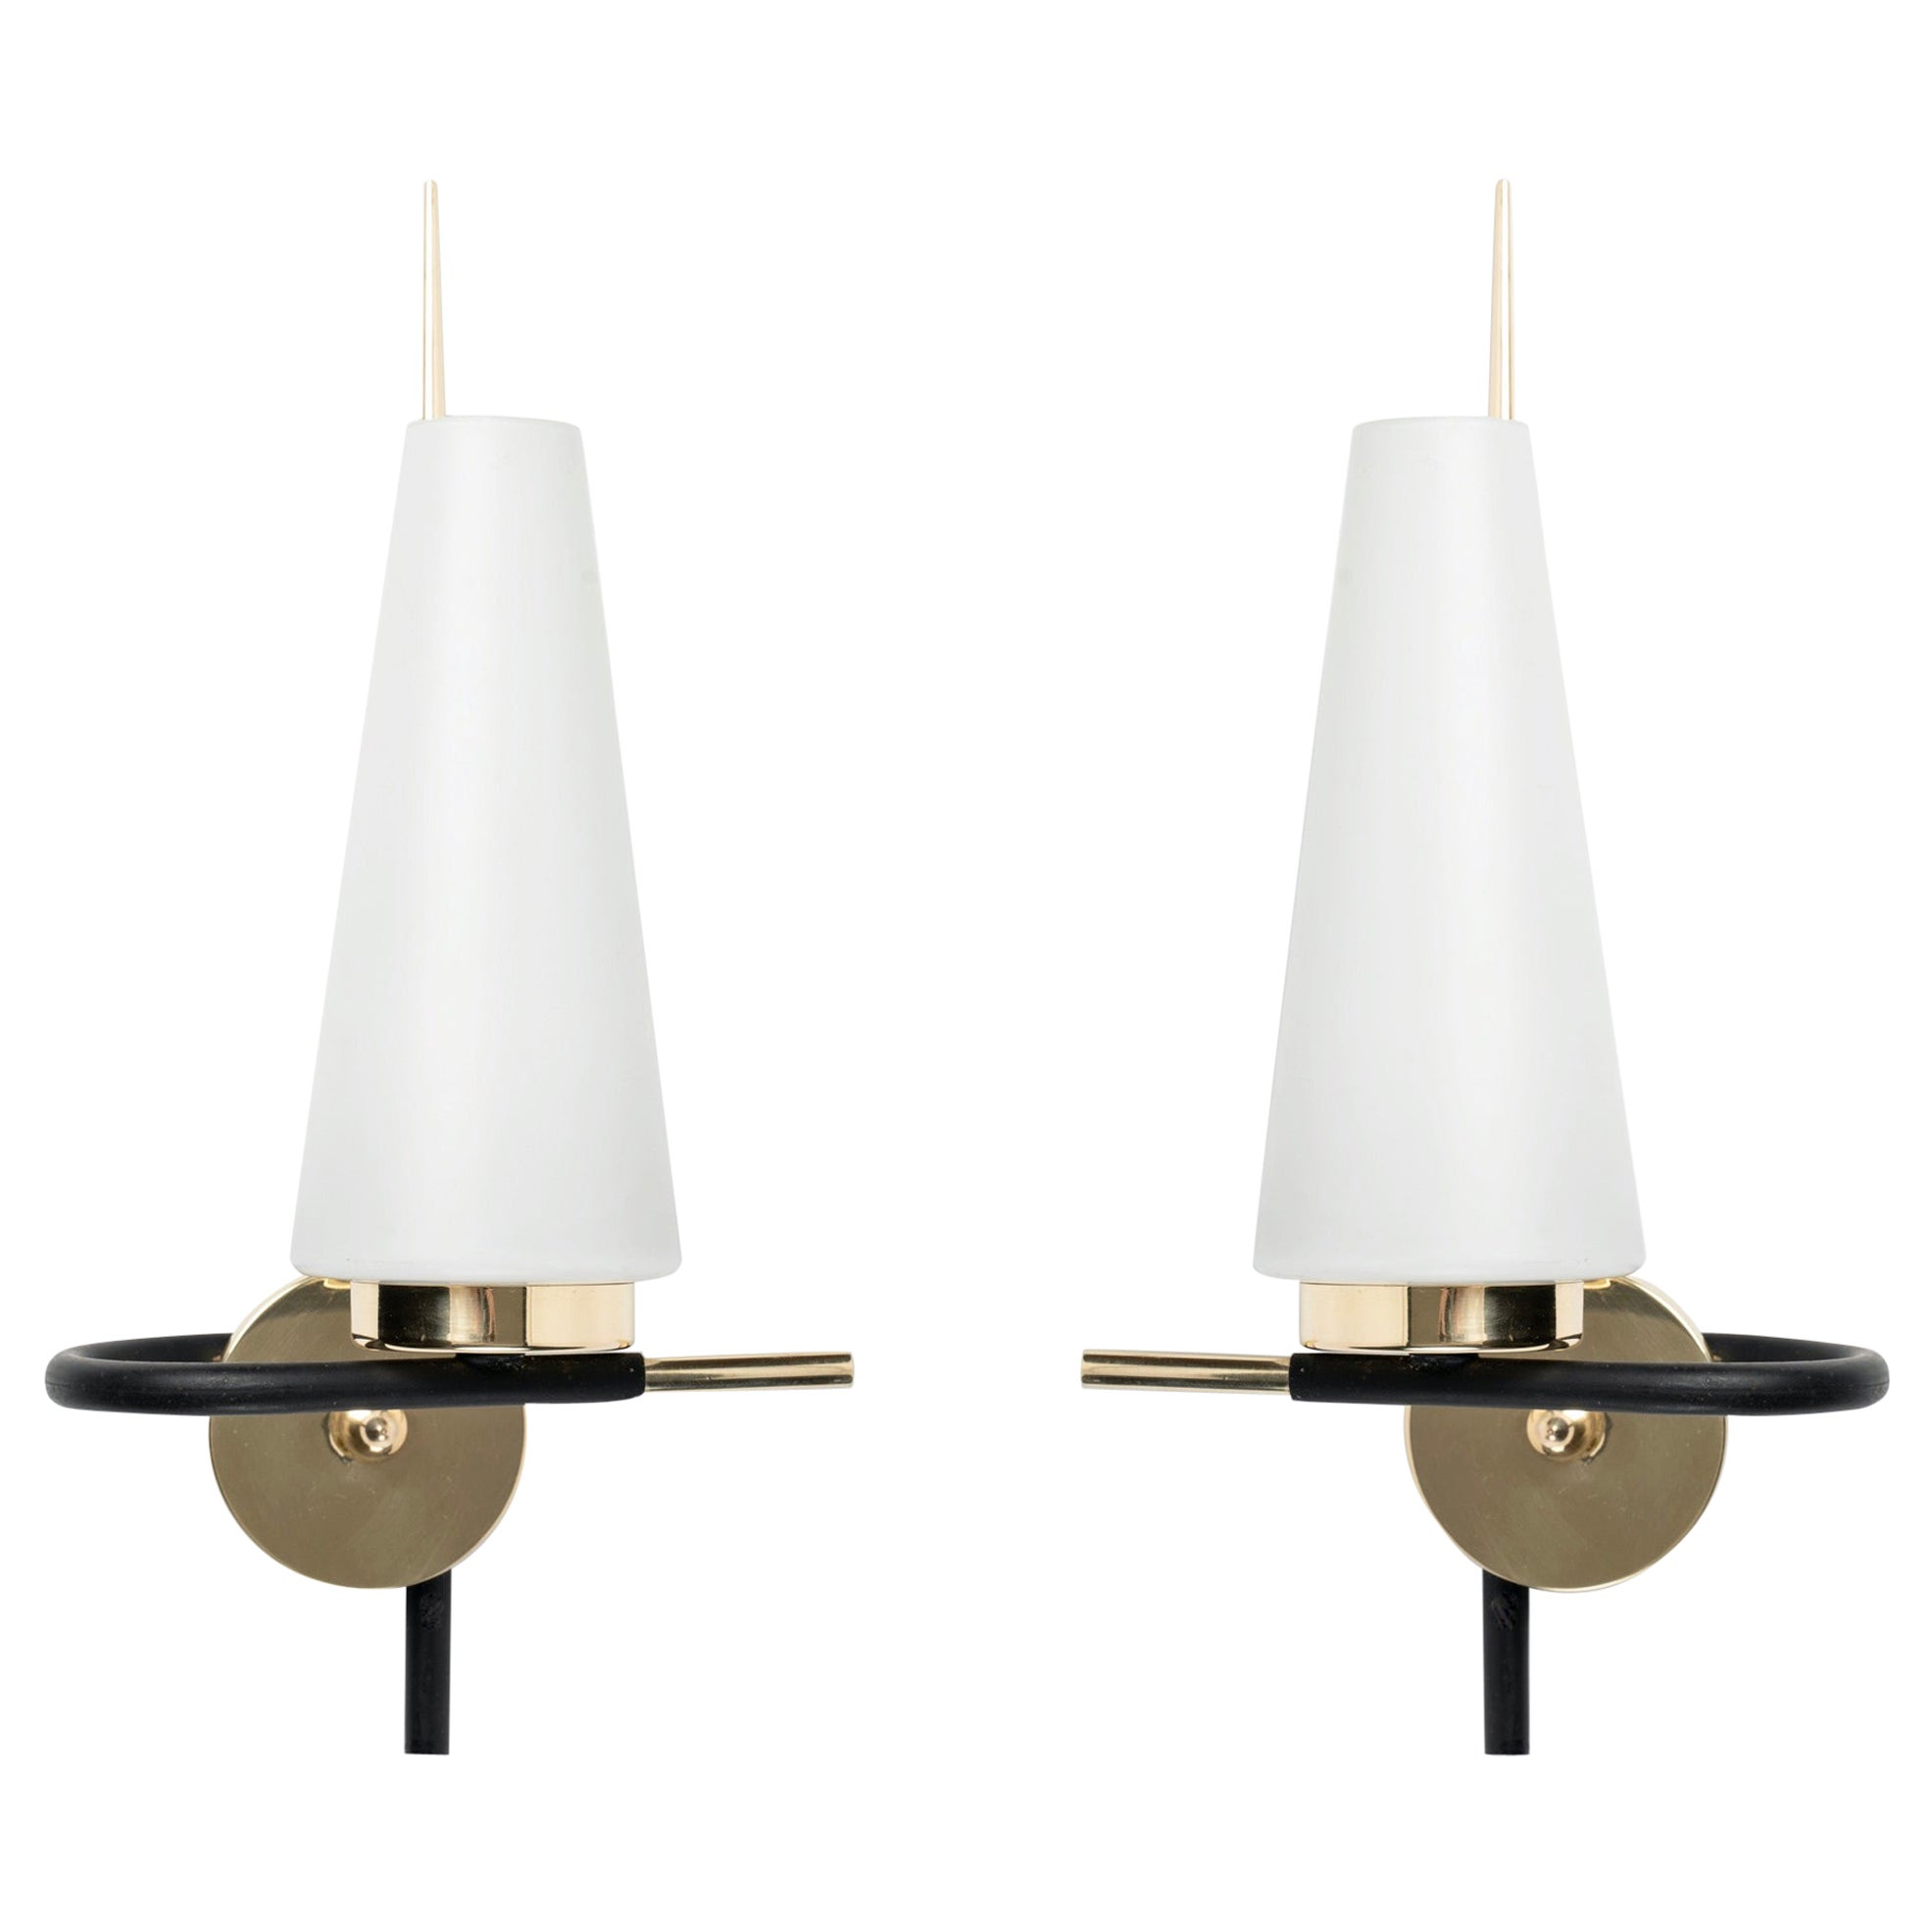 1950 Pair of Maison Lunel Wall Lights